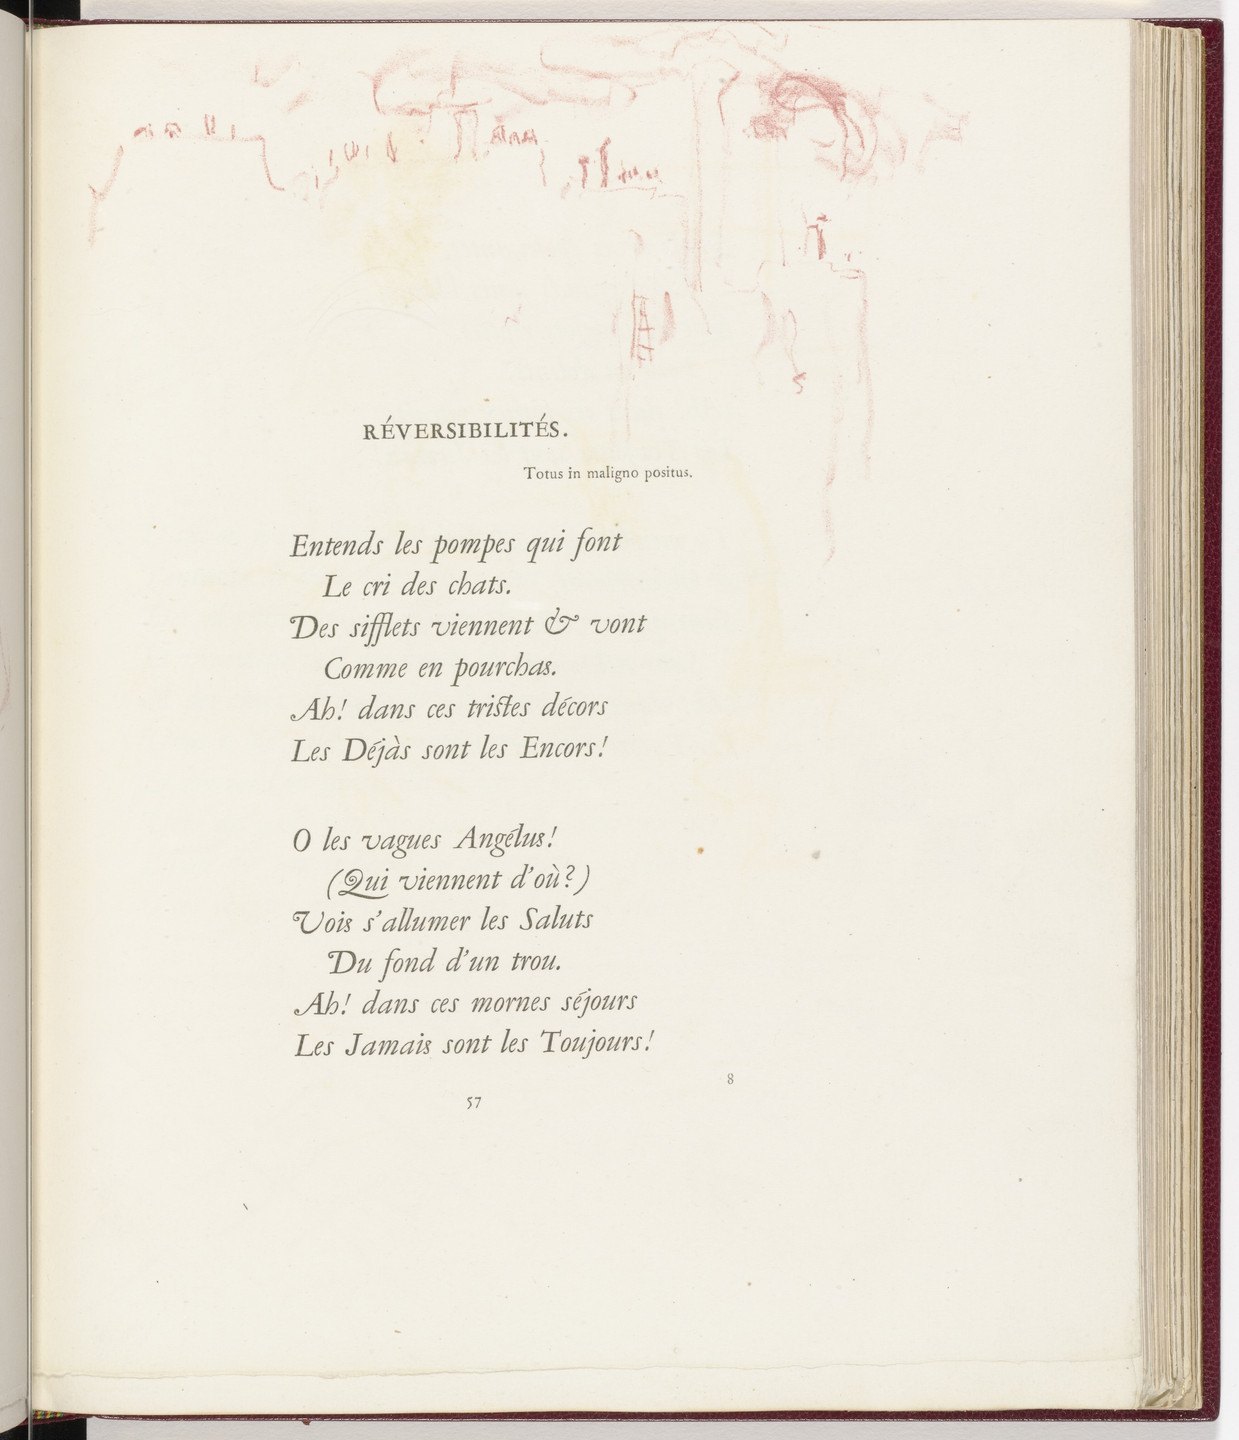 Pierre Bonnard. In-text plate (page 57) from Parallèlement (In Parallel). 1900